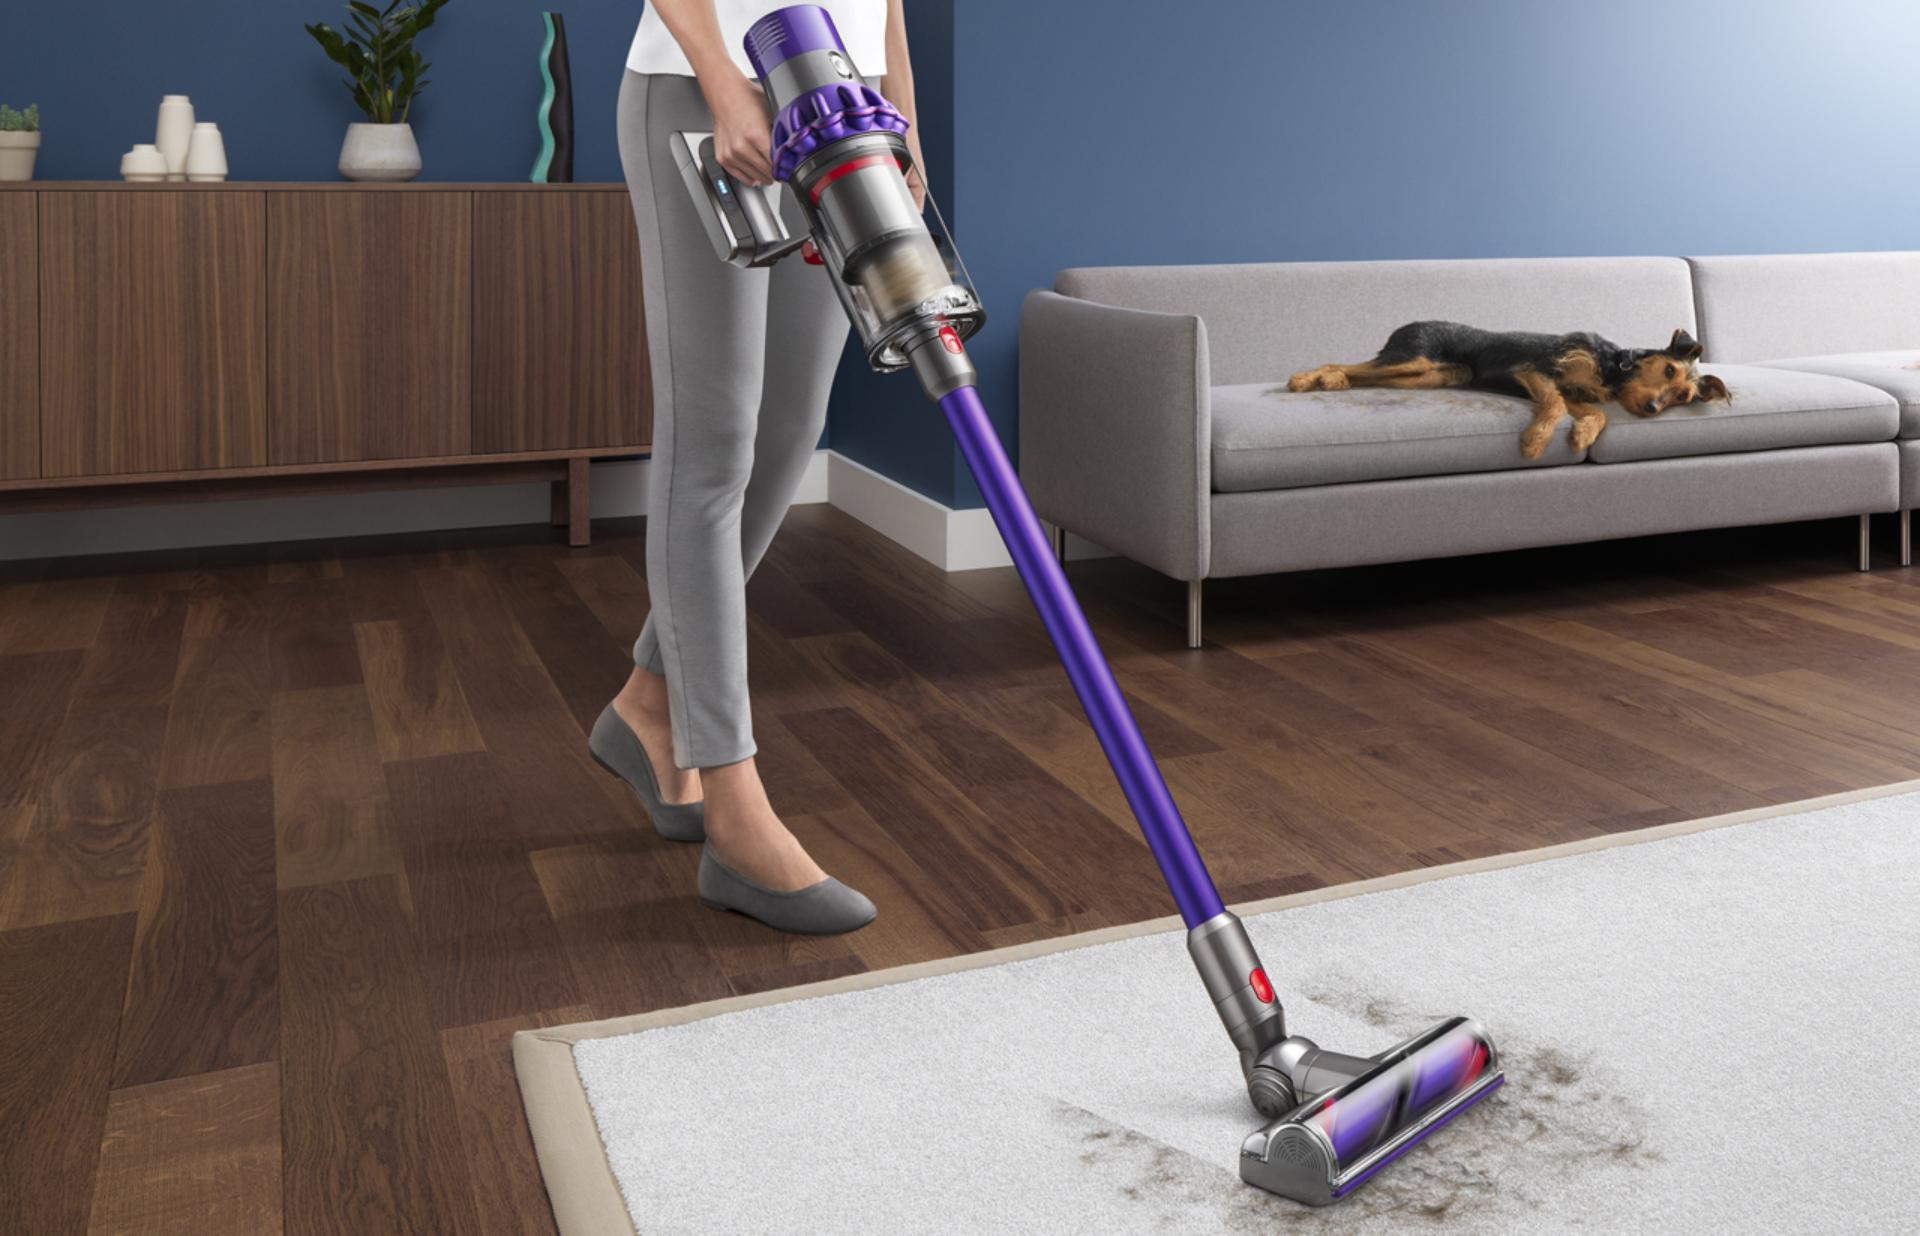 Dyson cyclone v10 picking up dog hair